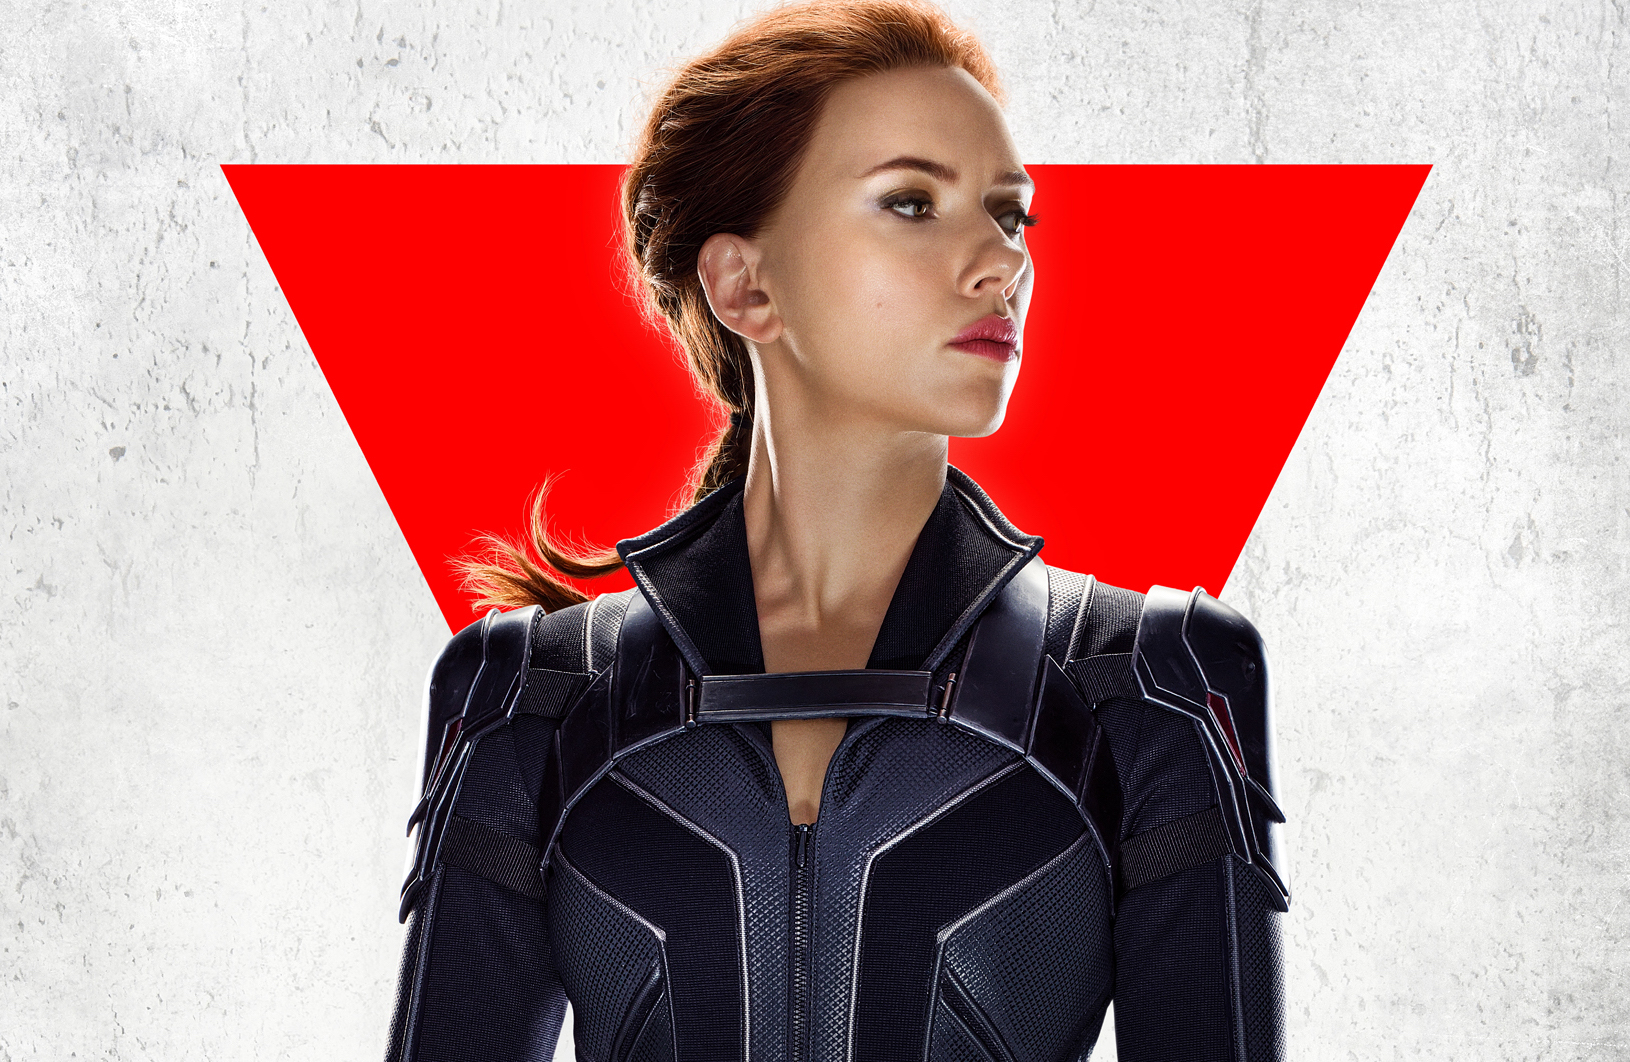 Fans React To 'Black Widow' After It Was Finally Released In Theaters